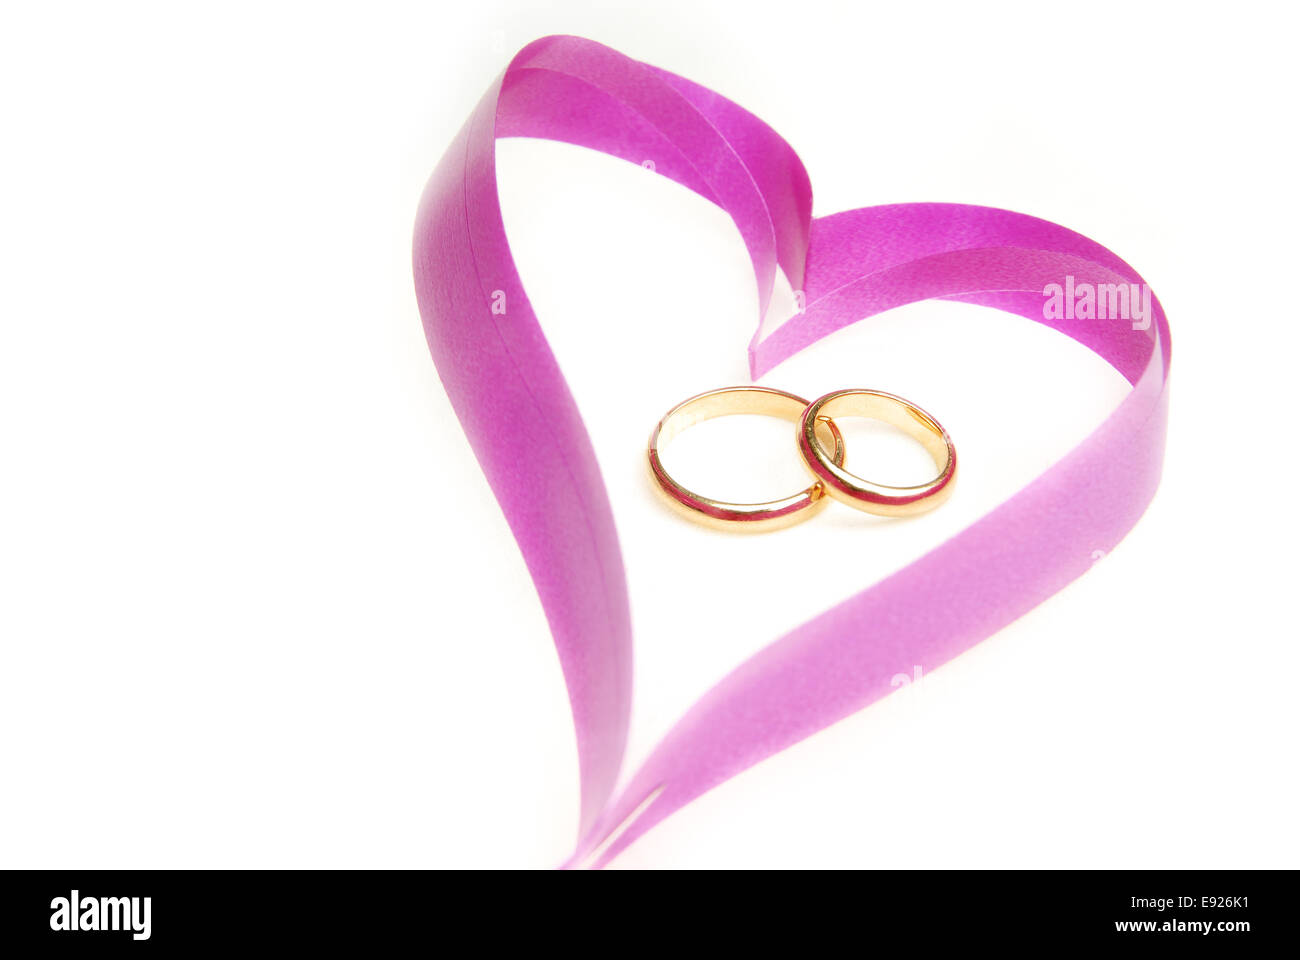 Wedding Band Heart Stock Photos & Wedding Band Heart Stock Images ...